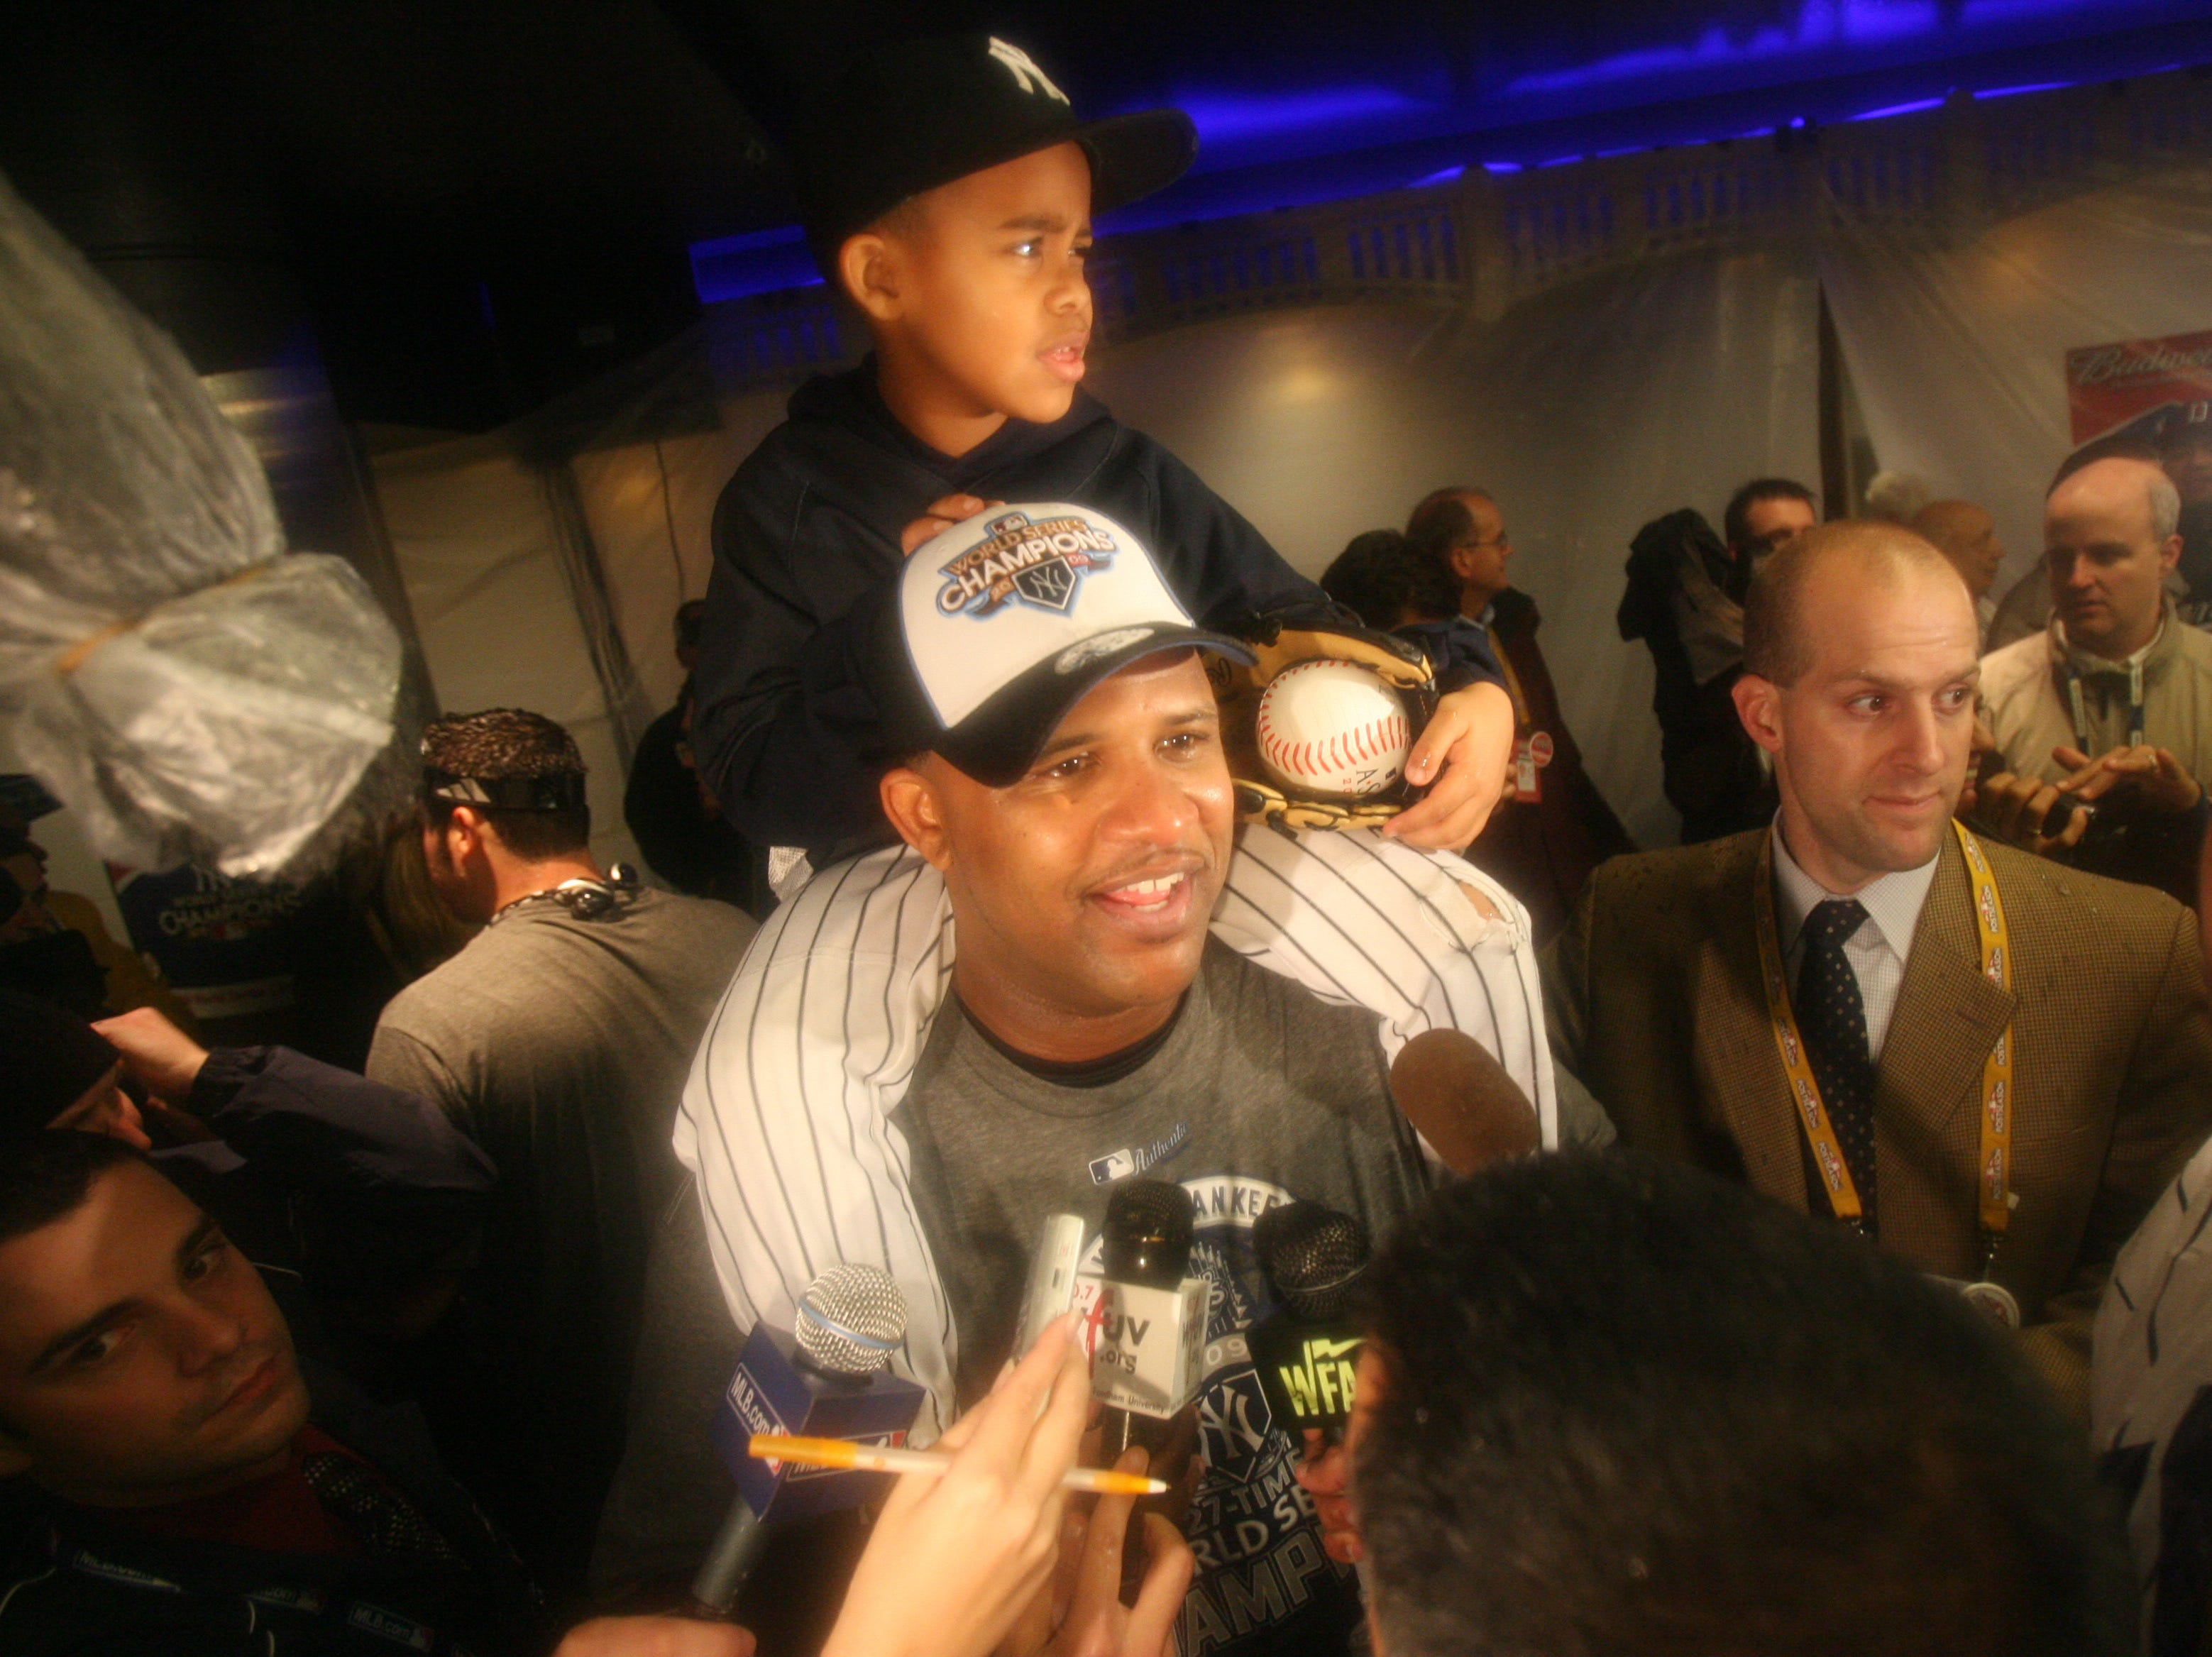 Philadelphia Phillies vs New York Yankees -- Game 6 -- The Yankees celebrate their World Series Championship. CC Sabathia in the locker room.